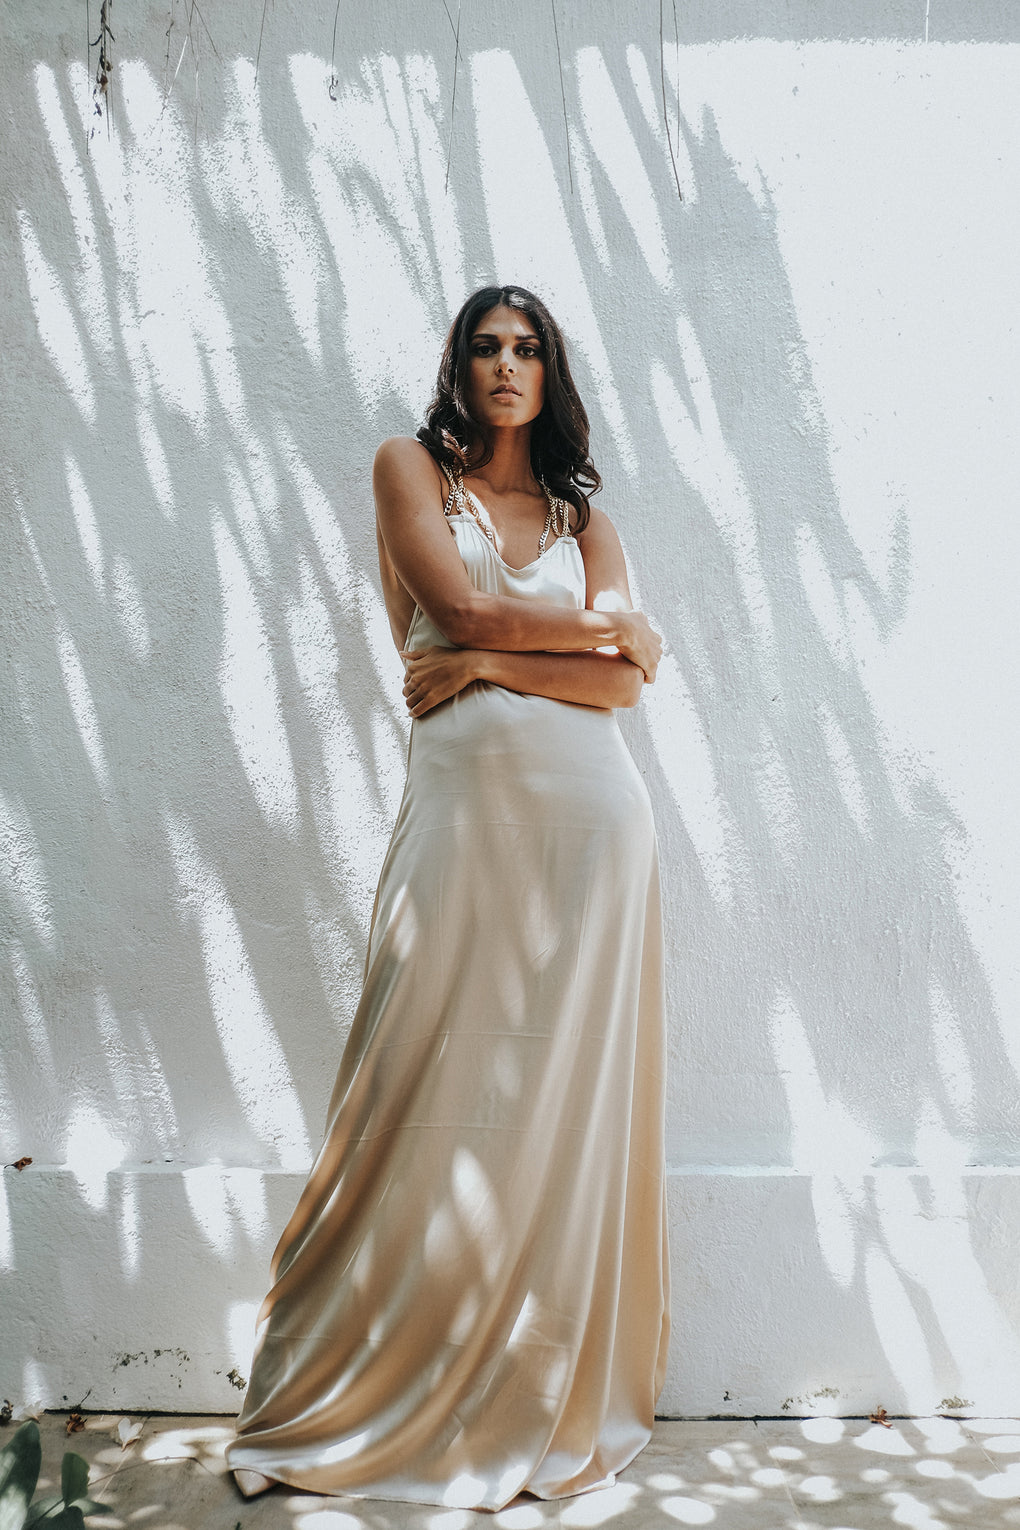 Golden Chain Silk Gown - Hanalei Swan Styles